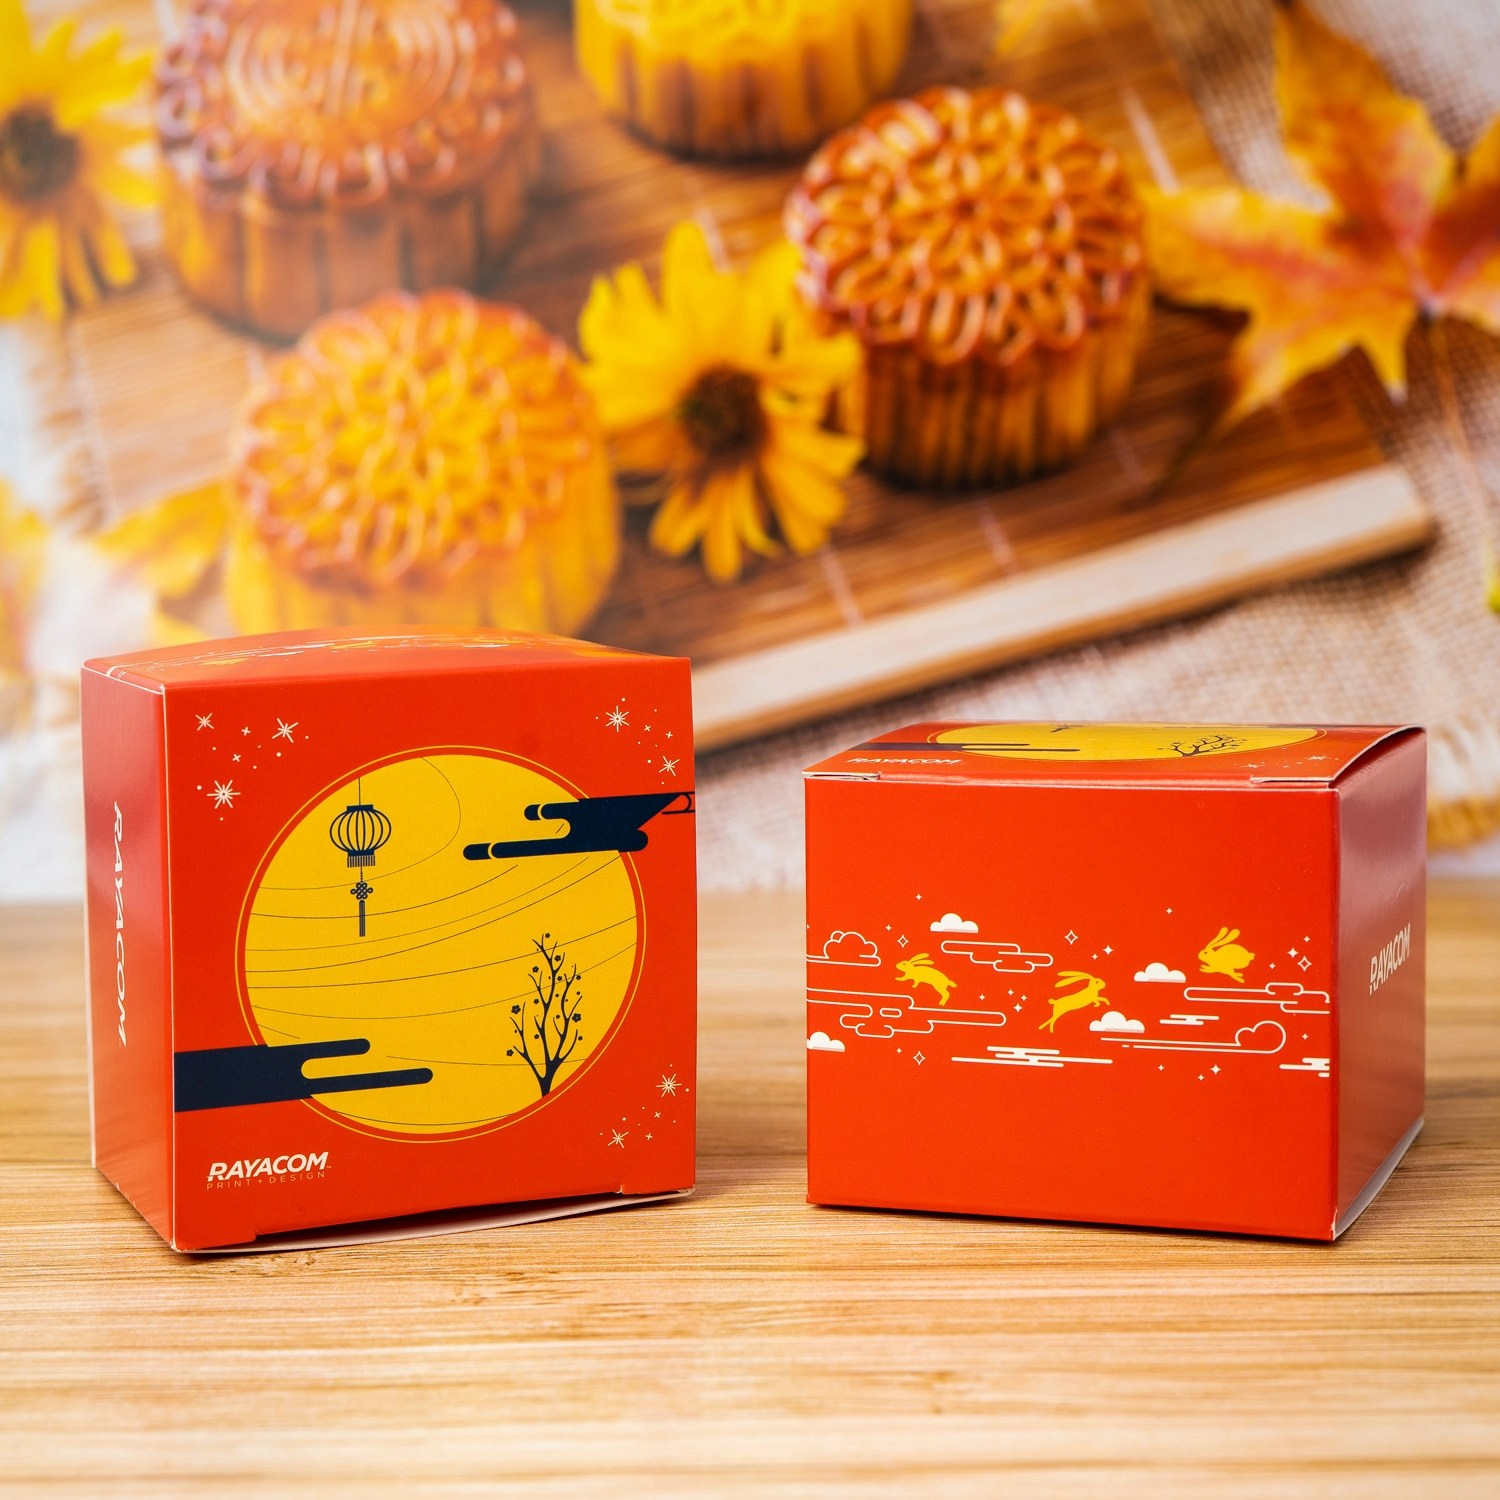 moon cake product box